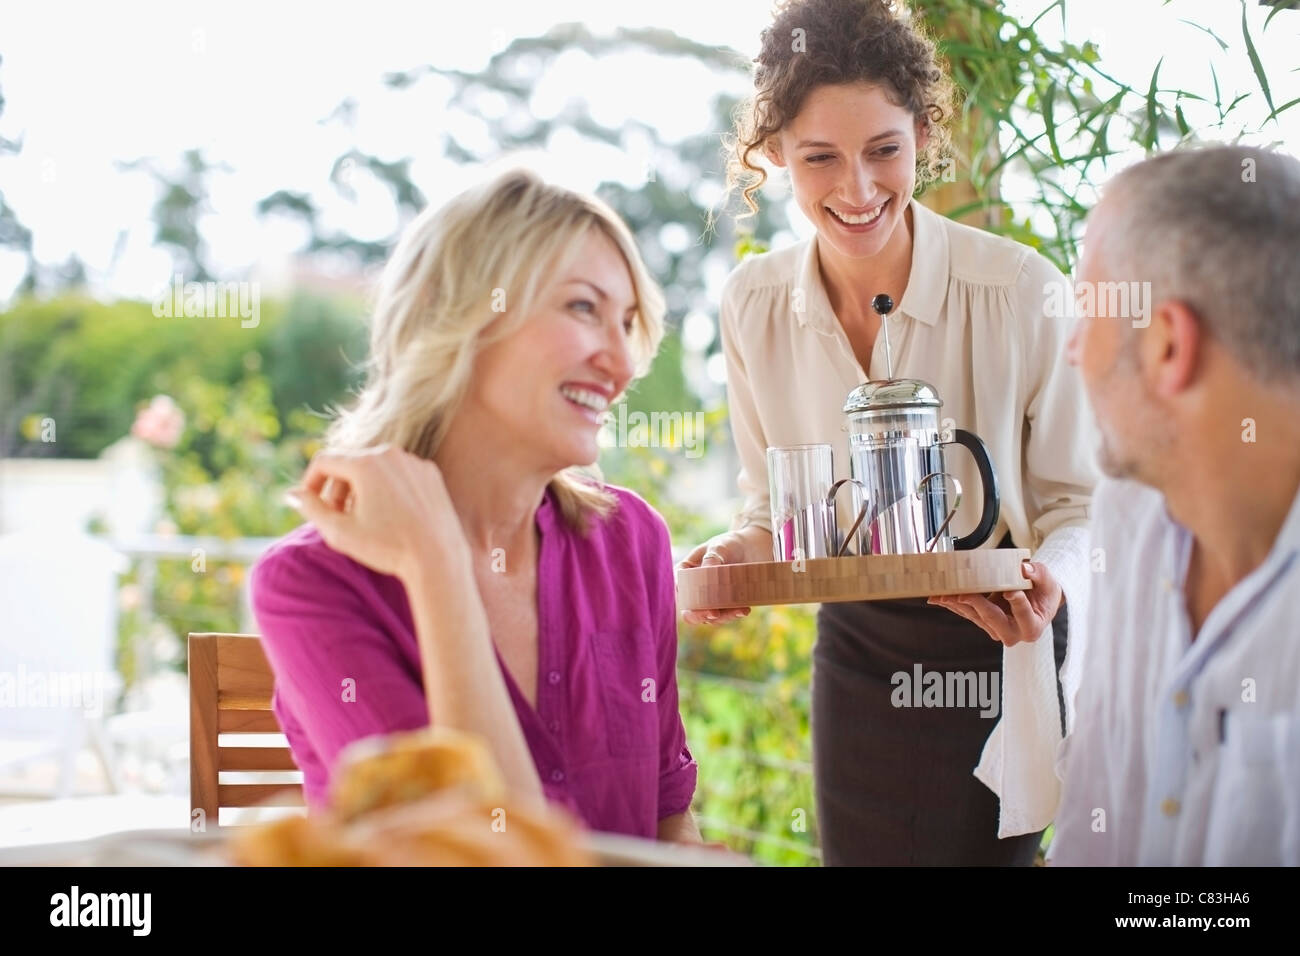 Waitress serving coffee to couple - Stock Image